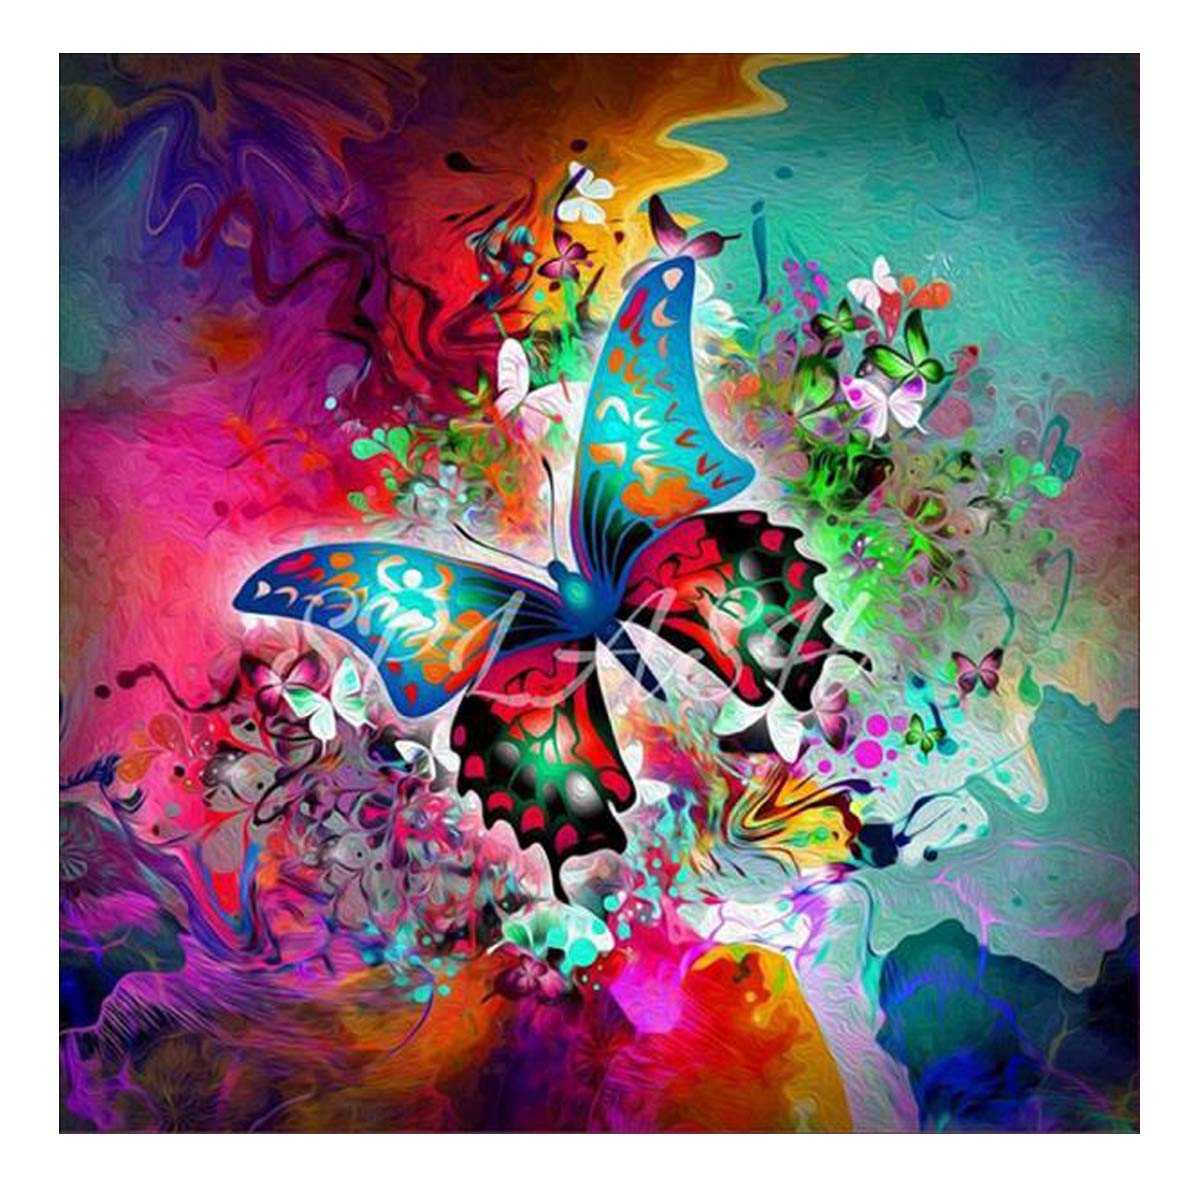 5D Diamond Painting Full Round Drill Kits for Adults Pasted Embroidery Cross Stitch Arts Craft for Home Wall Decor Butterfly and Flower 12x12in MXJSUA